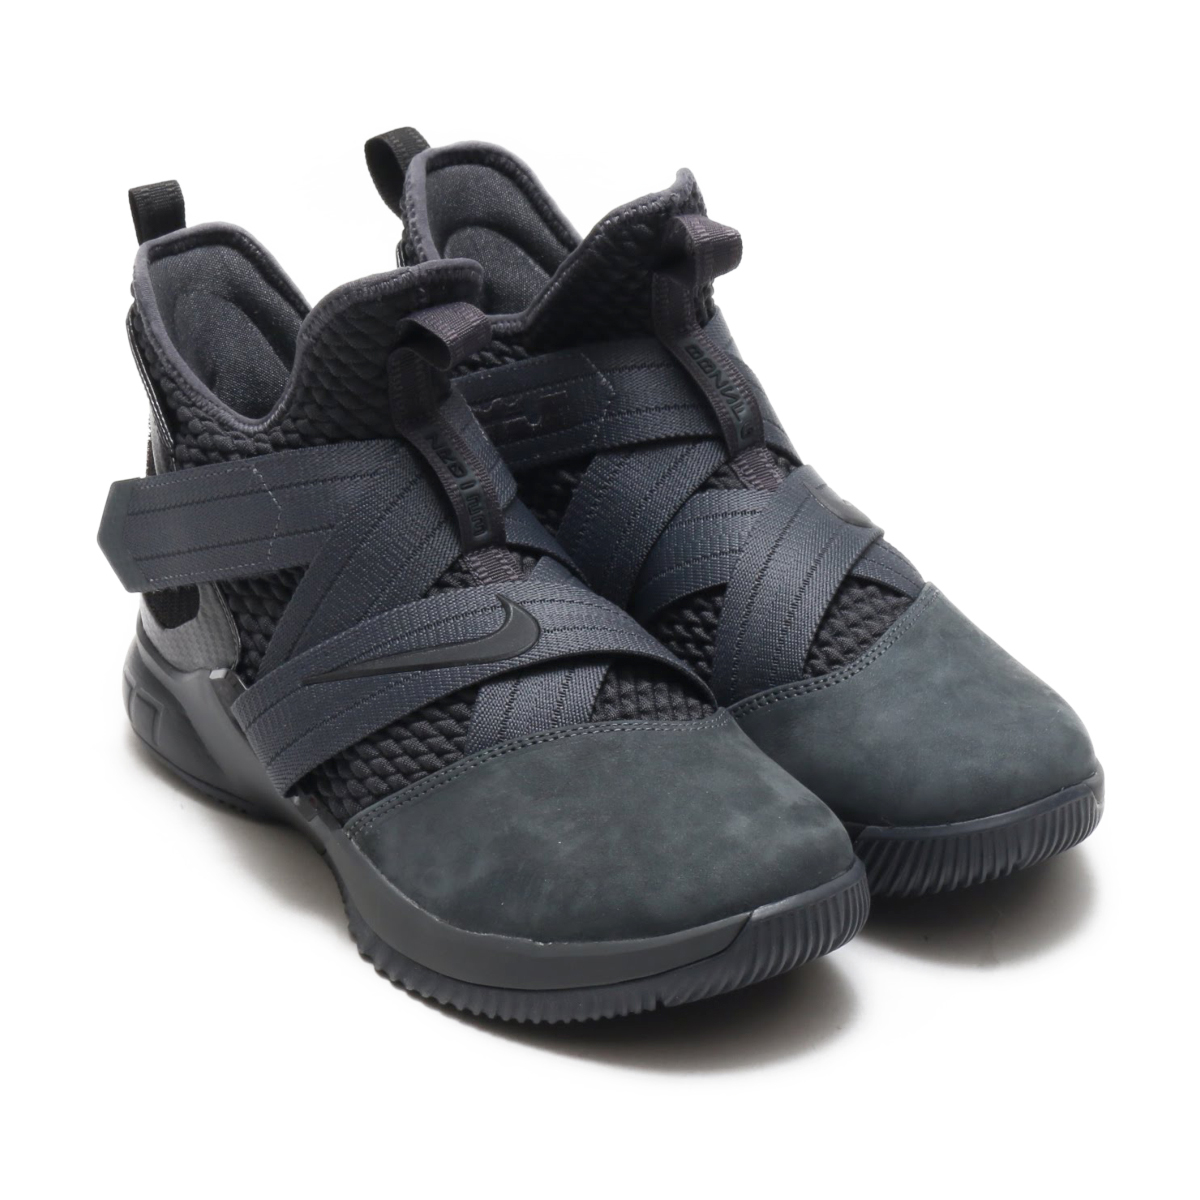 NIKE LEBRON SOLDIER XII SFG EP(ナイキ レブロン ソルジャー XII SFG EP)(ANTHRACITE/ANTHRACITE-BLACK)18SU-S